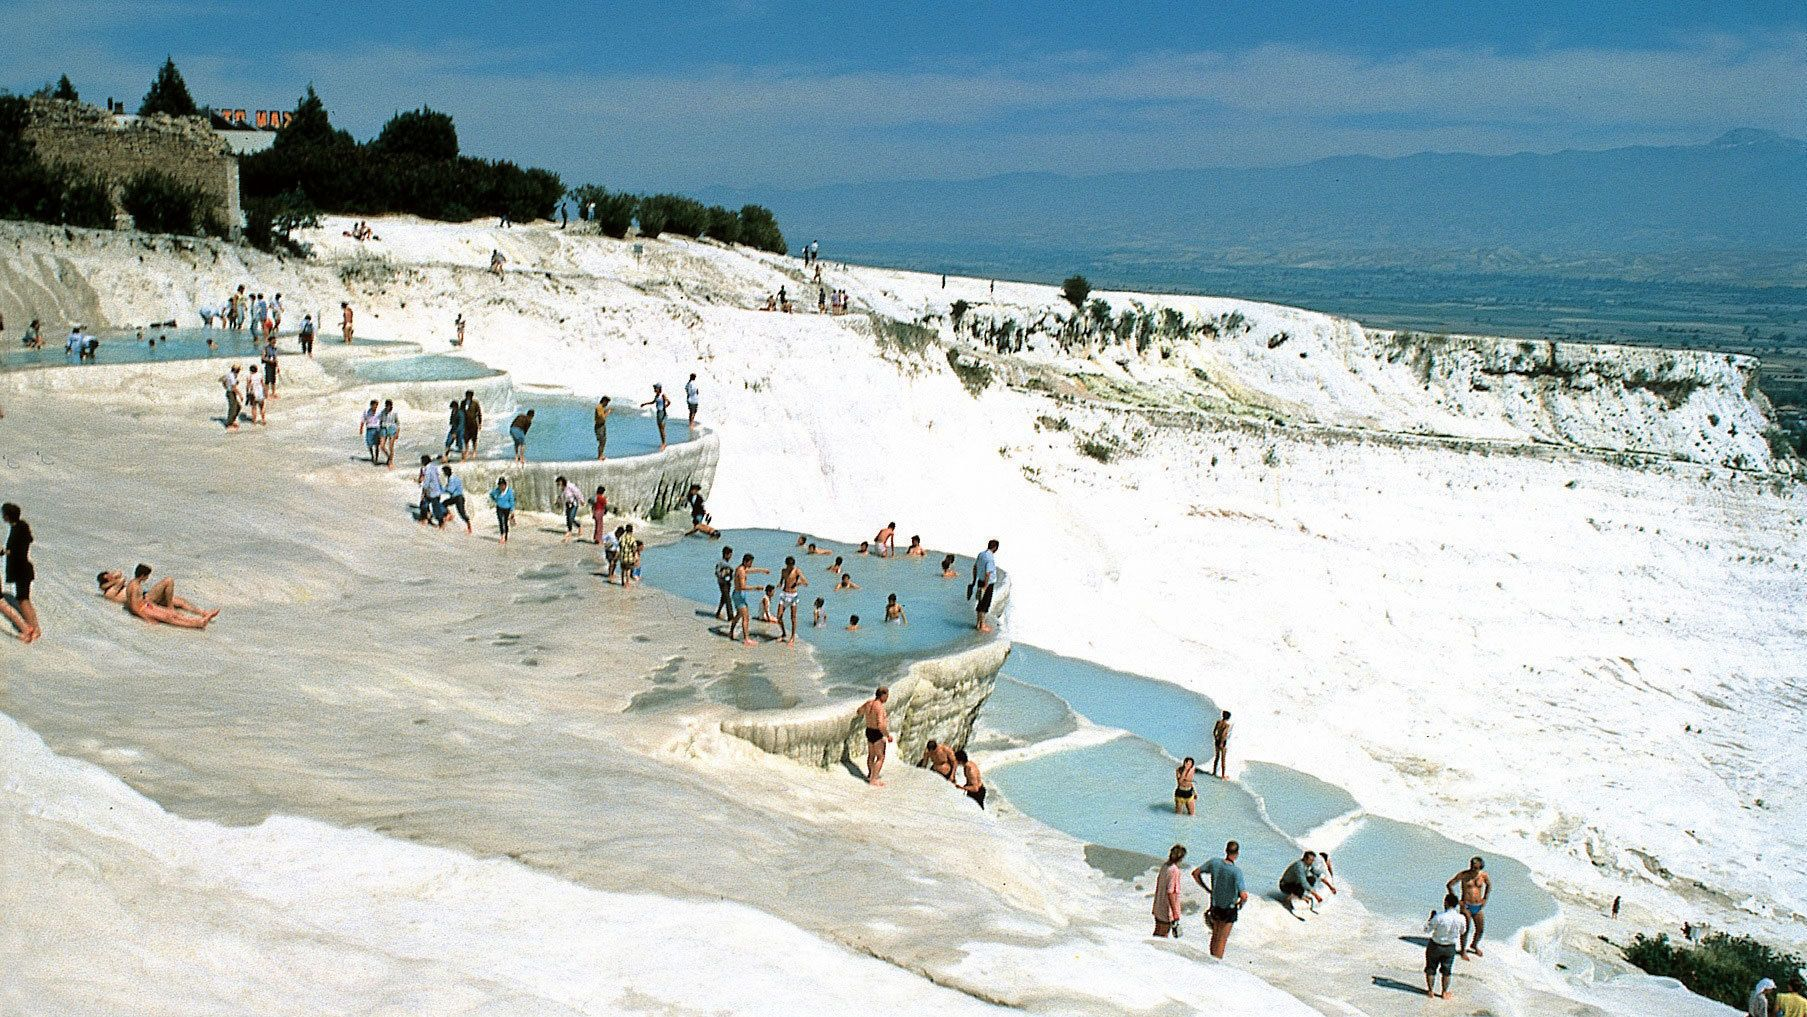 People relaxing in the hot springs of Pamukkale